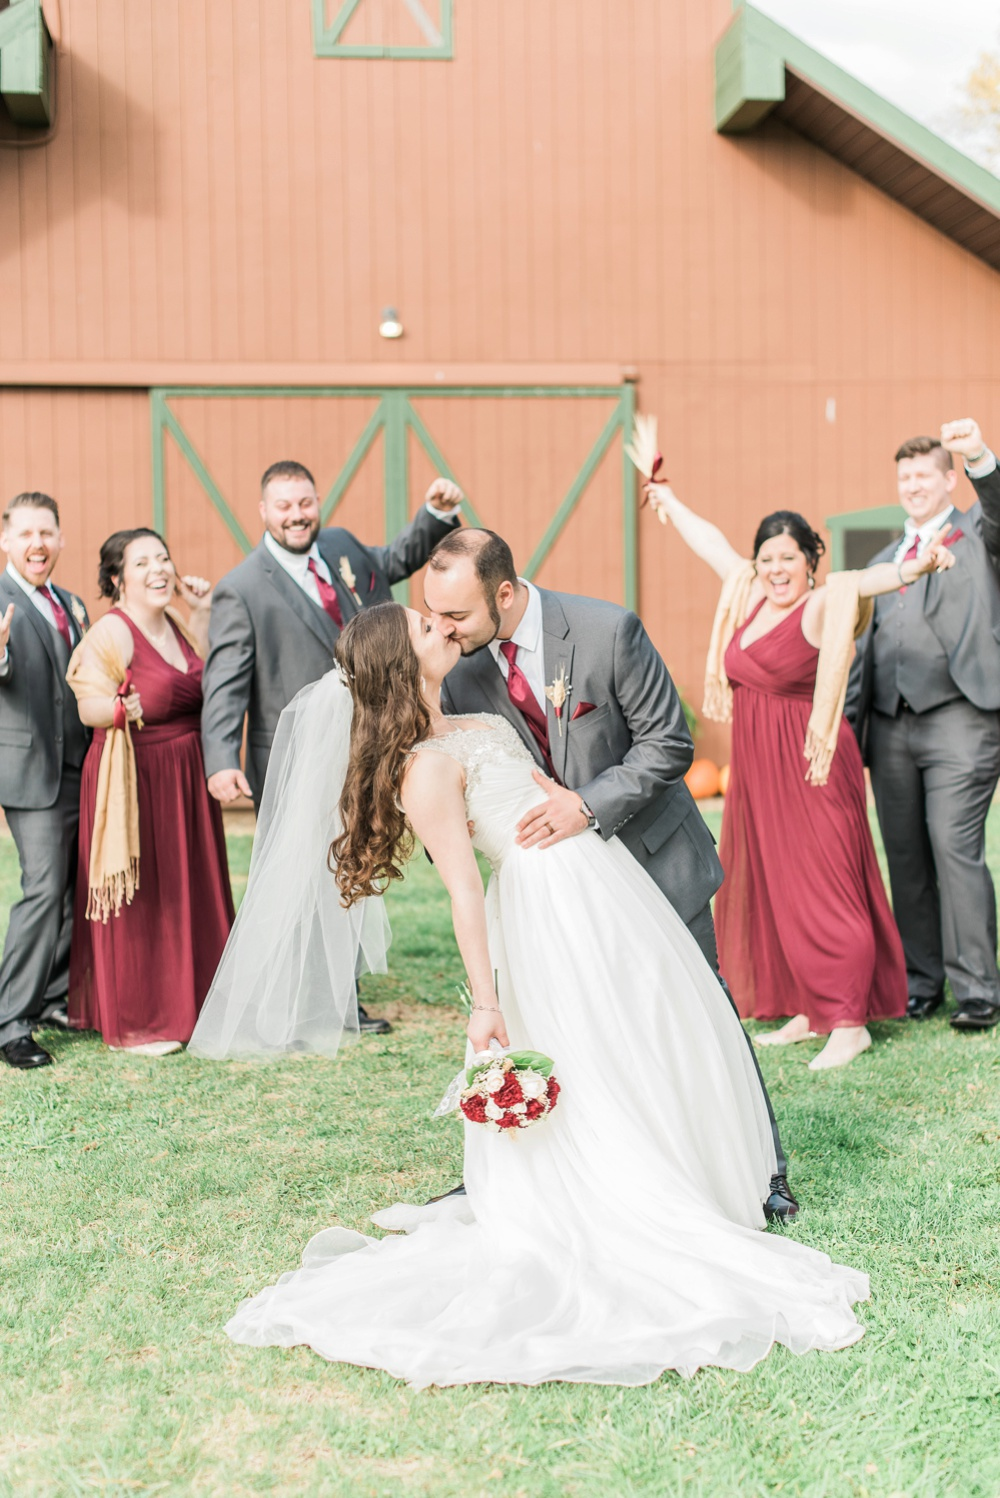 ricciardis-tree-farm-wedding-wadsworth-ohio-lauren-ryan_0055.jpg